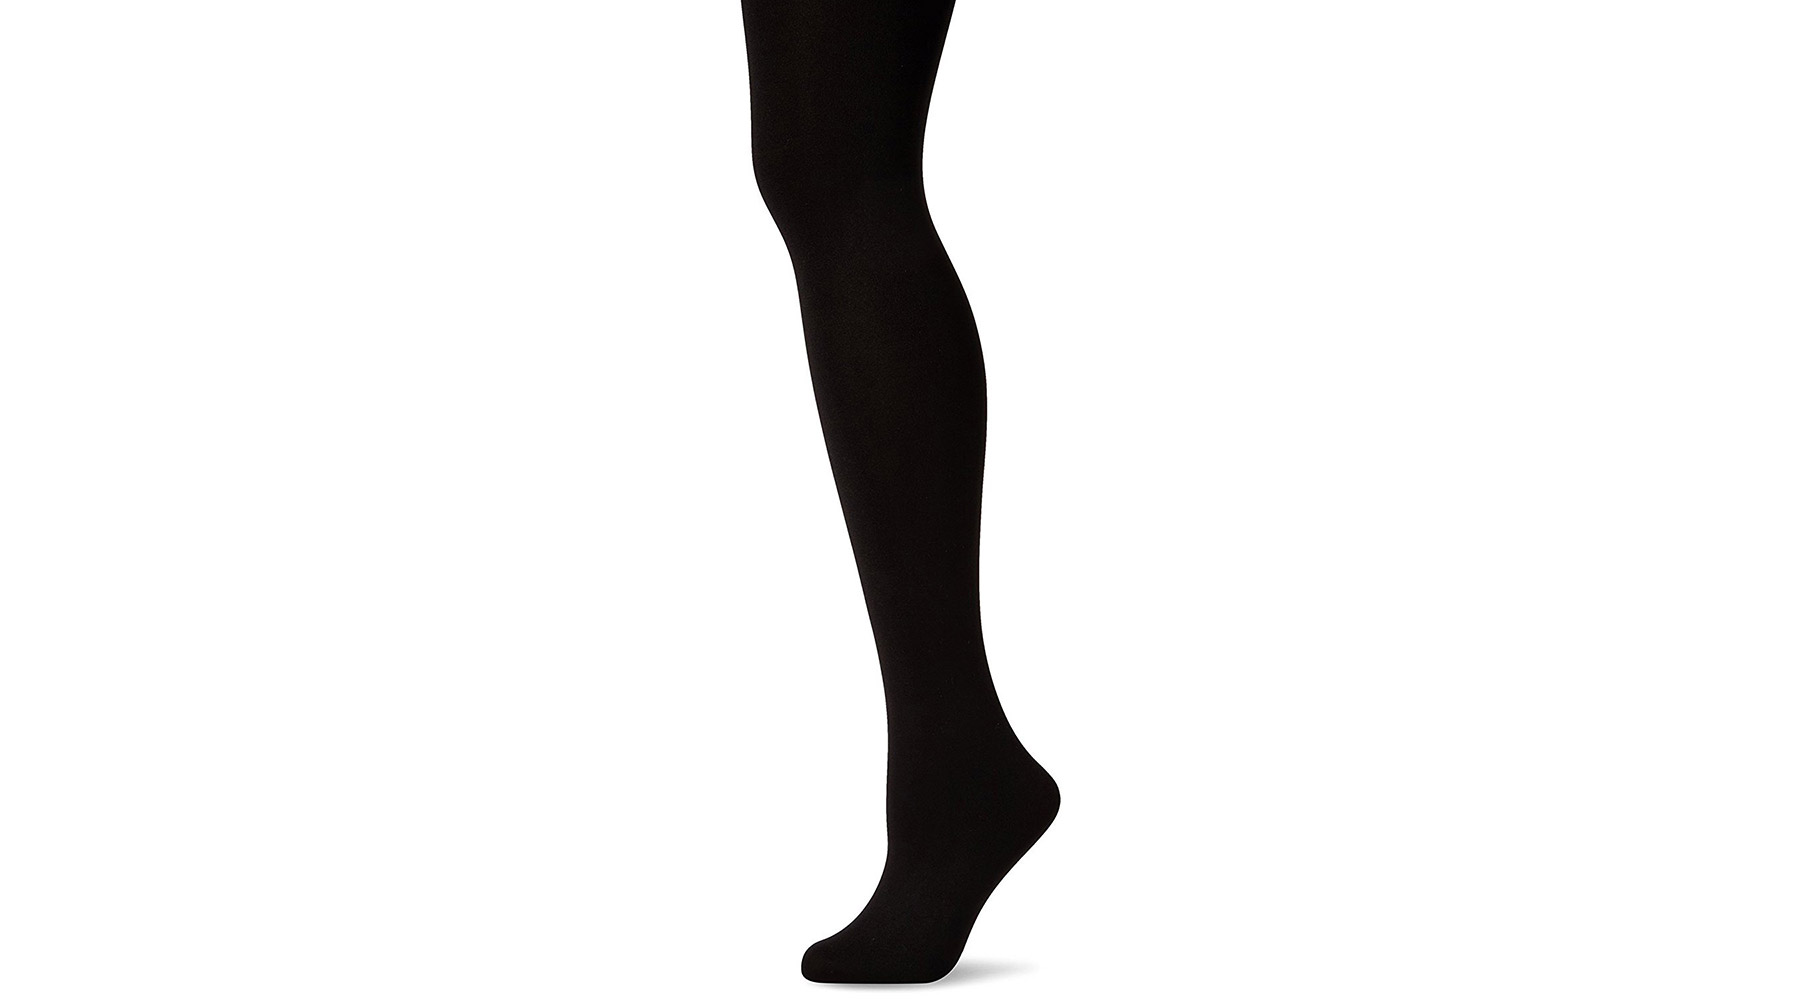 add07009eae98f 7 Warmest Winter Tights, According to Customers | Real Simple